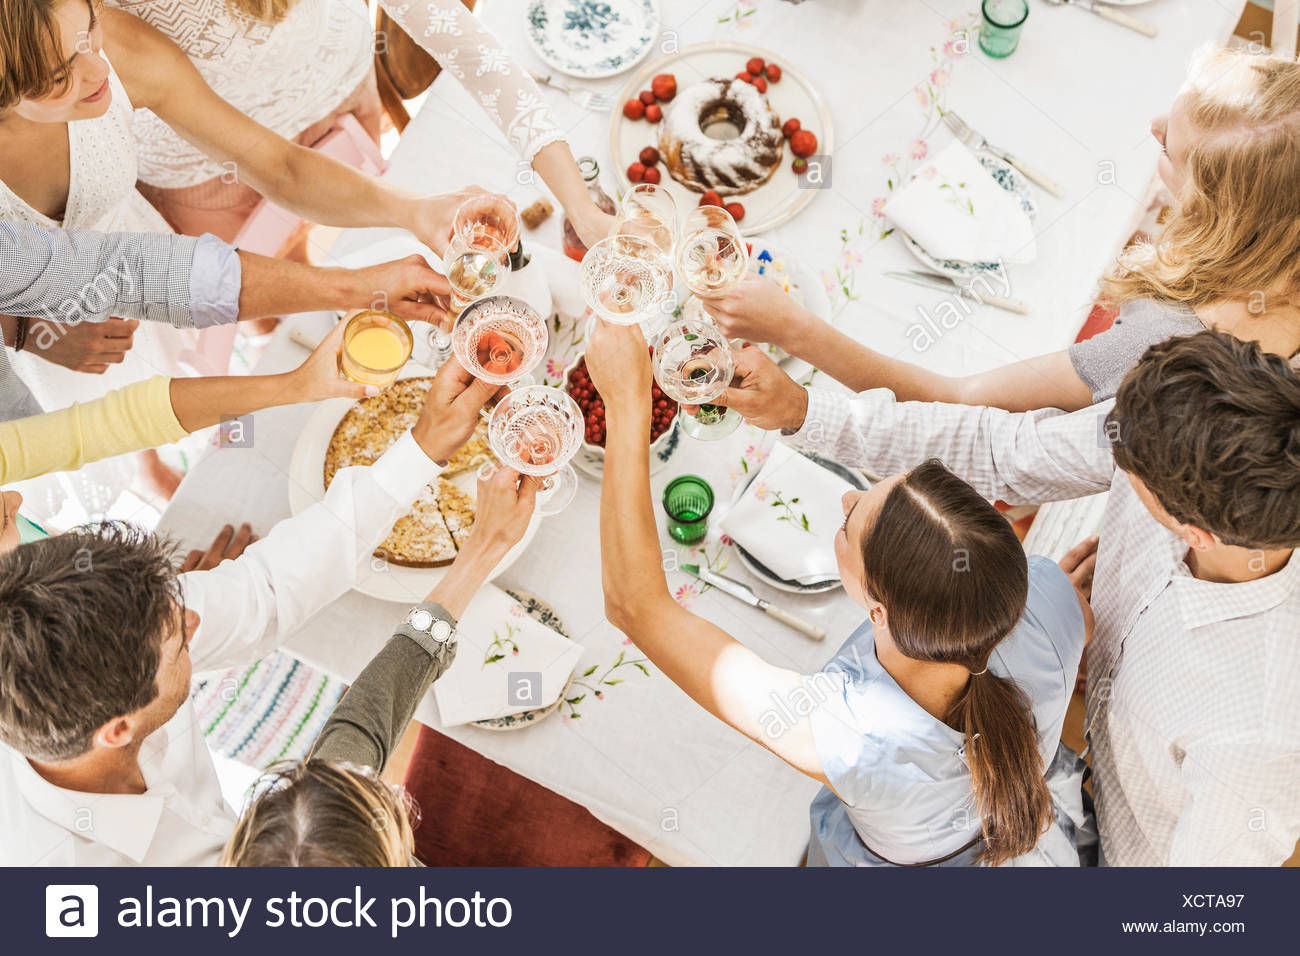 Overhead view of family making a toast at birthday party - Stock Image